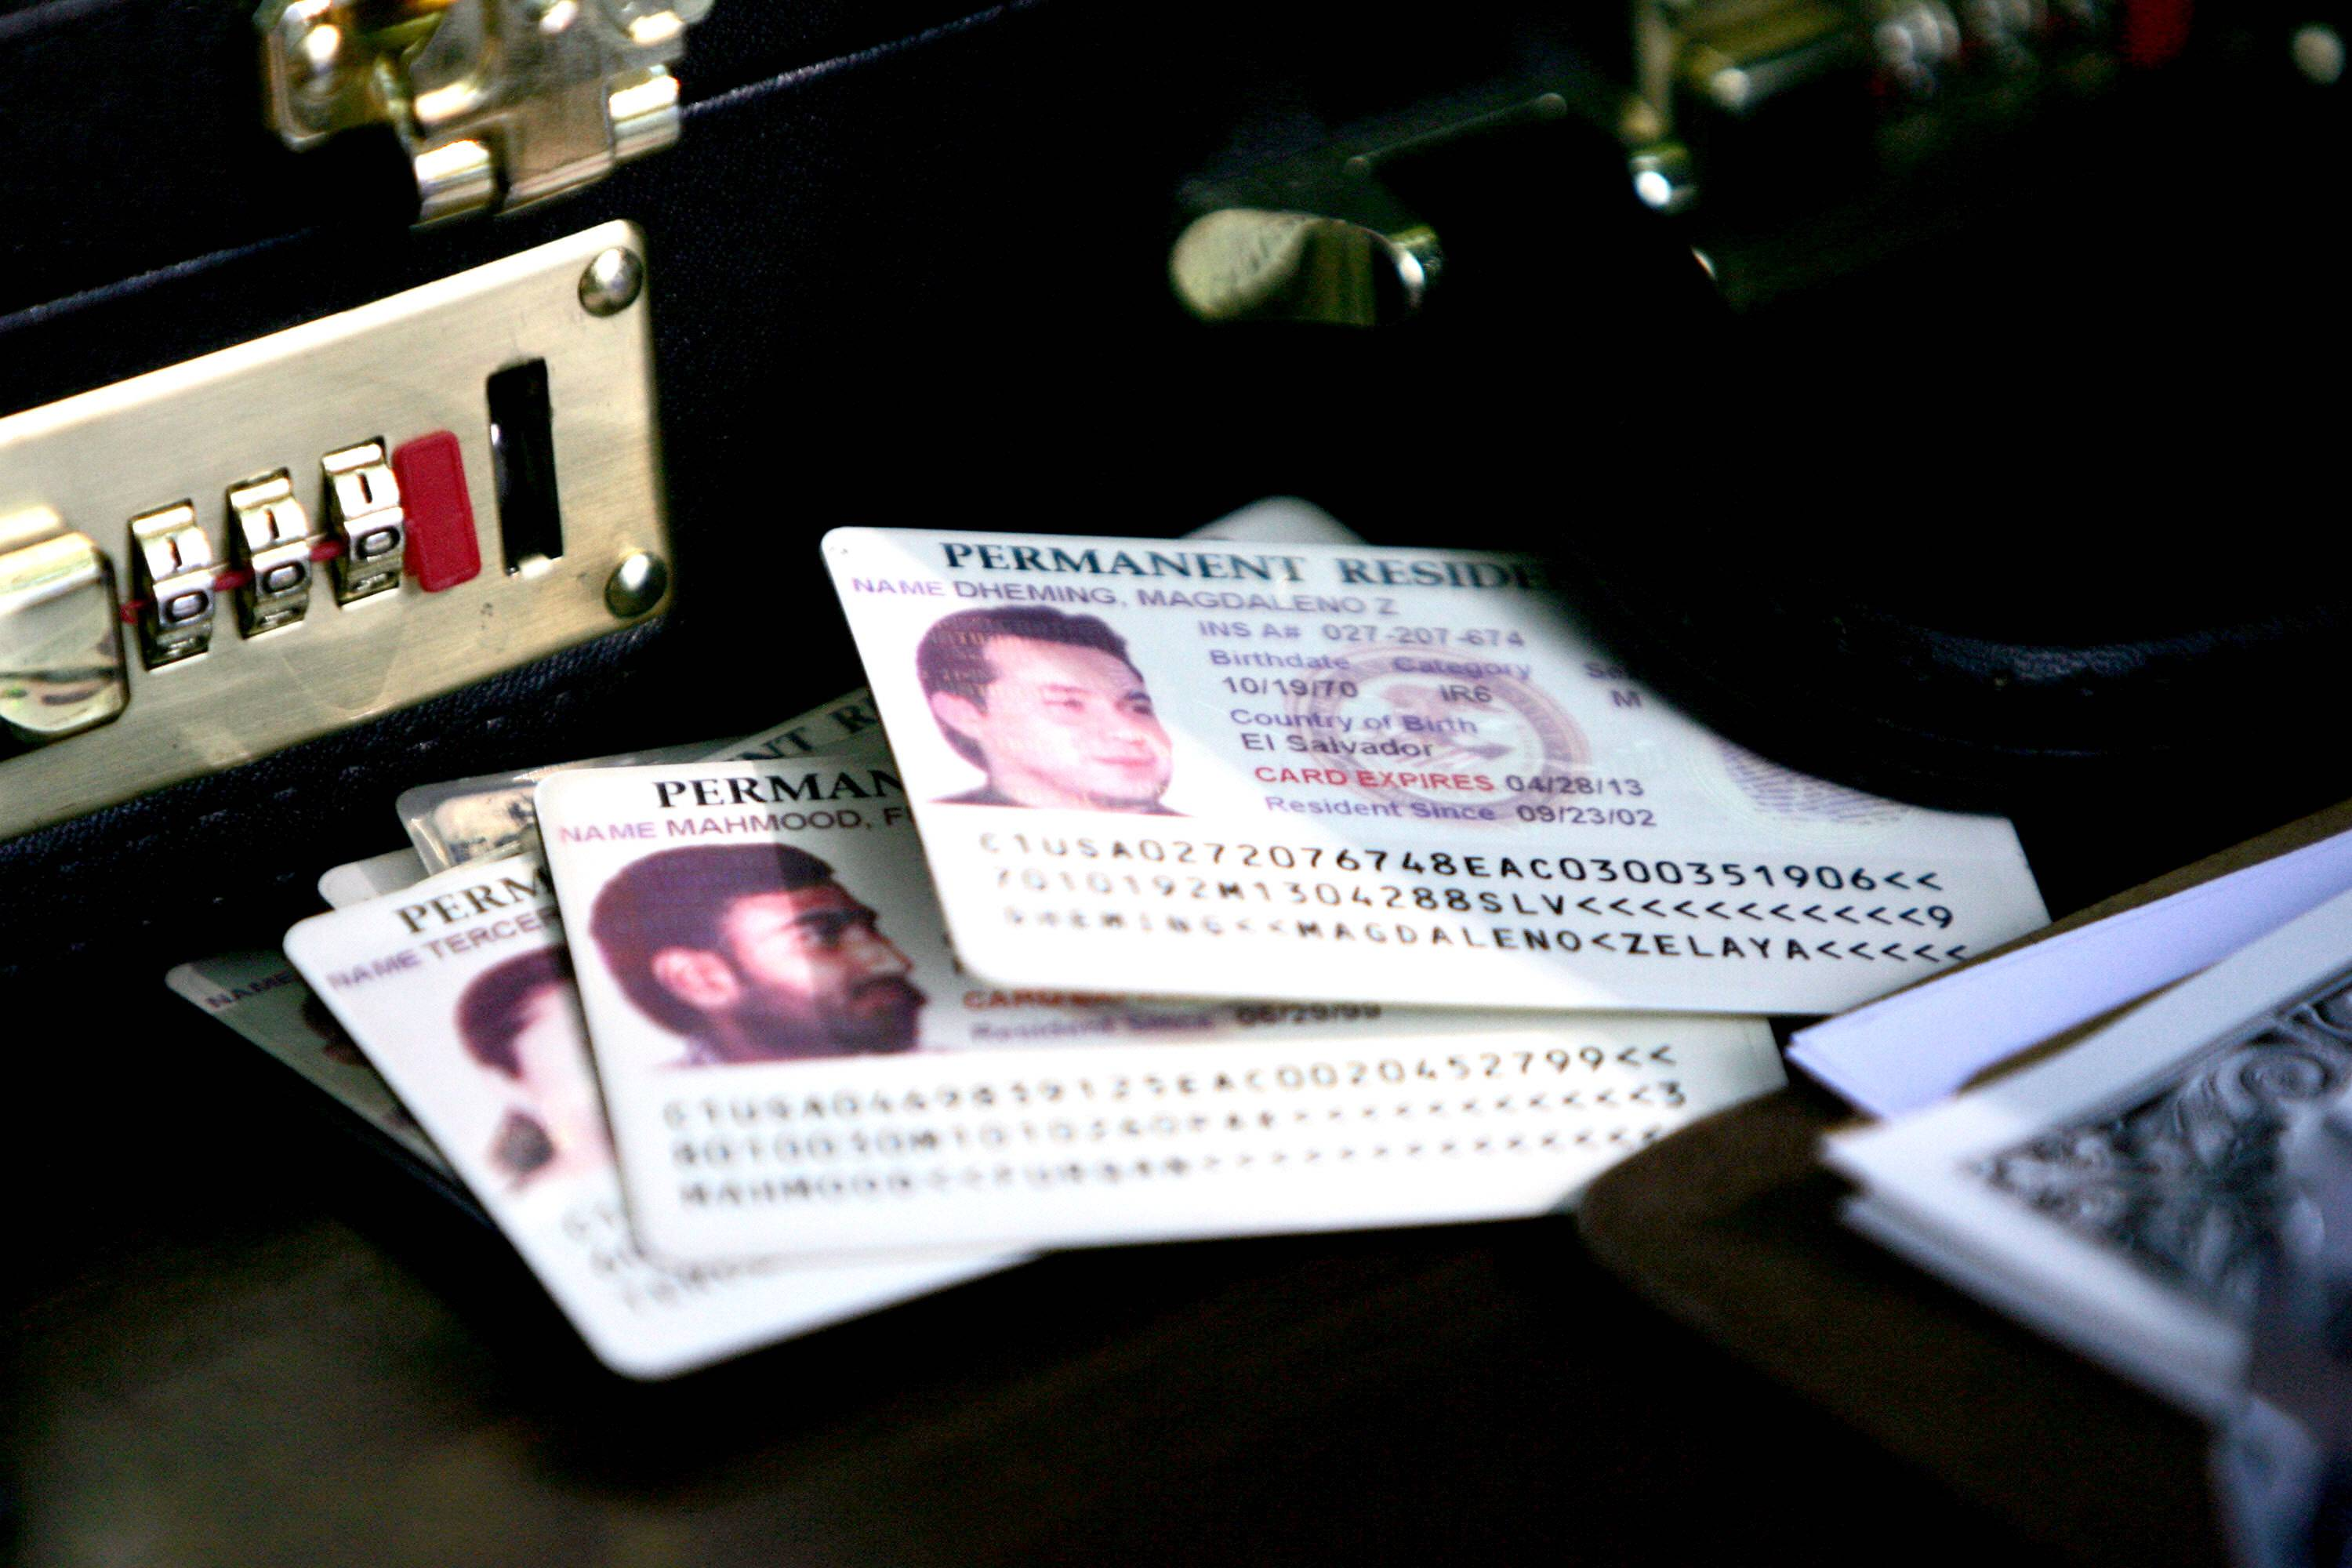 Haitians and Jamaicans Locked Out of U.S. Diversity Visas - U.S. immigration officials released the 2014 Diversity Visa (DV) Program guidelines and nationals from Haiti, Jamaica and other countries are barred from applying because a total of 50,000 immigrants have come from these countries over the past five years. (Photo: JIM WATSON/AFP/Getty Images)